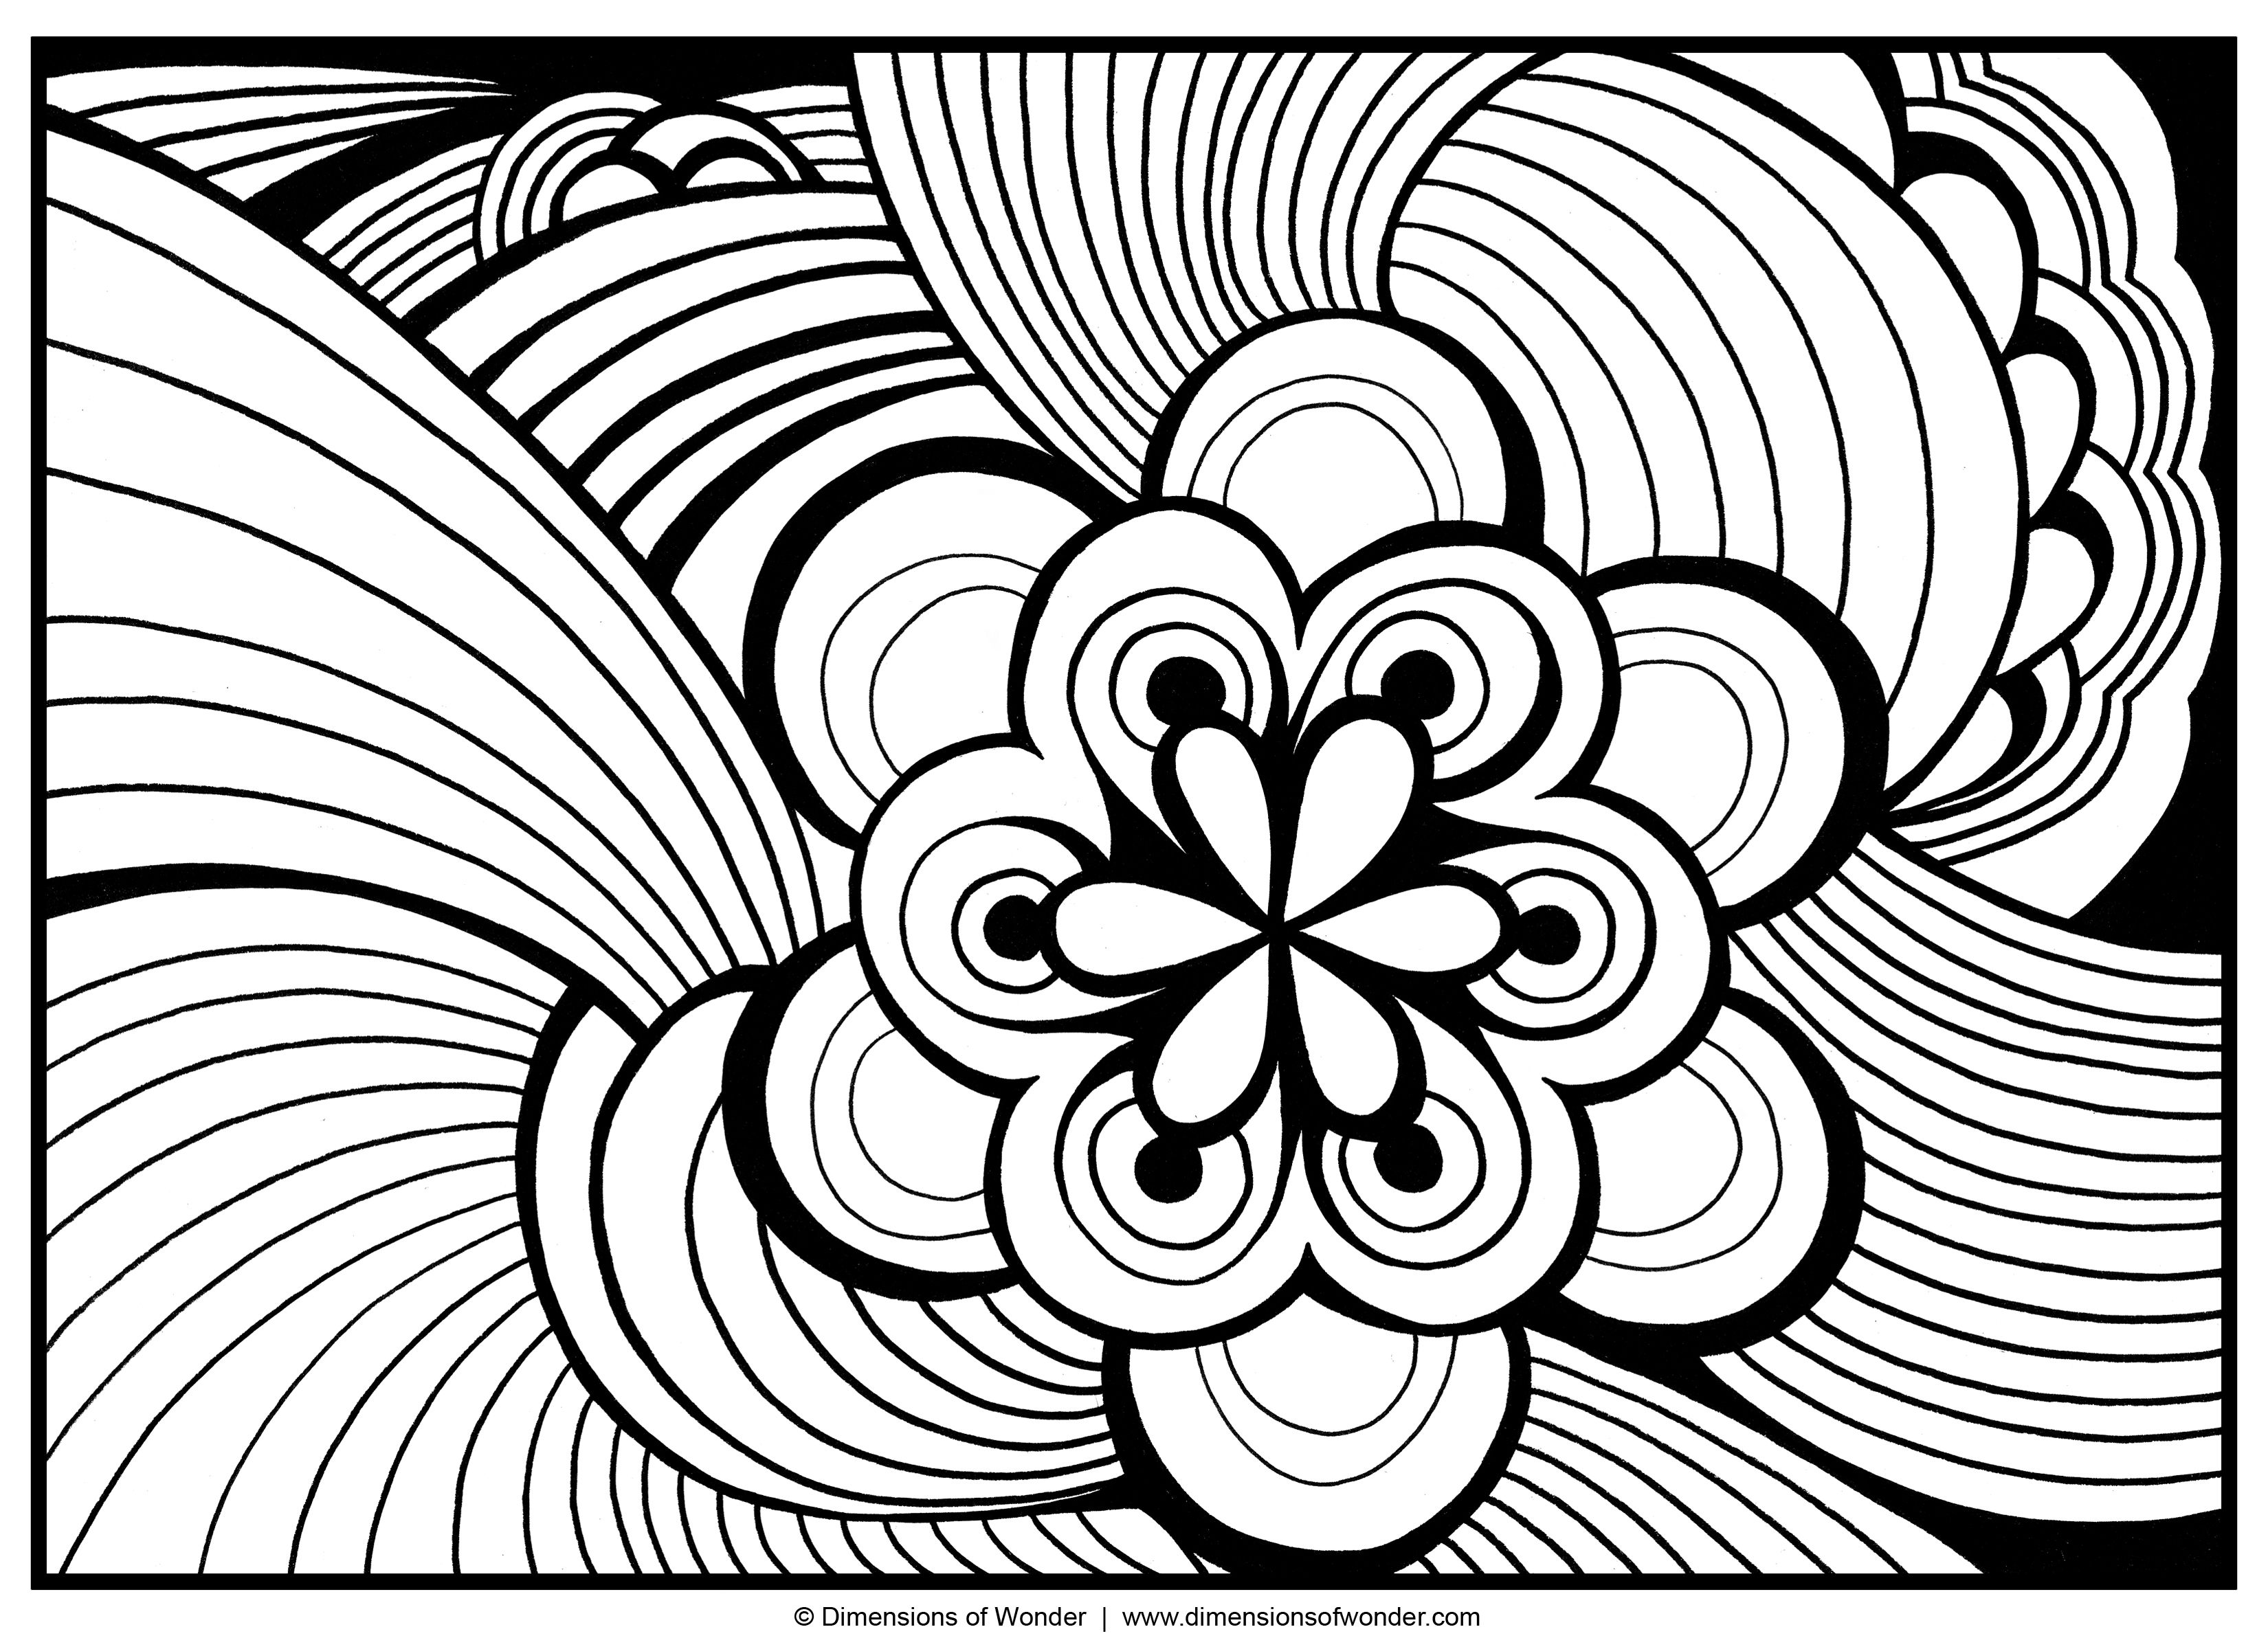 great coloring pages for adults abstract flowers one of the coloring pages for adults abstract flowers 2881 for your kids to print out and find similar of